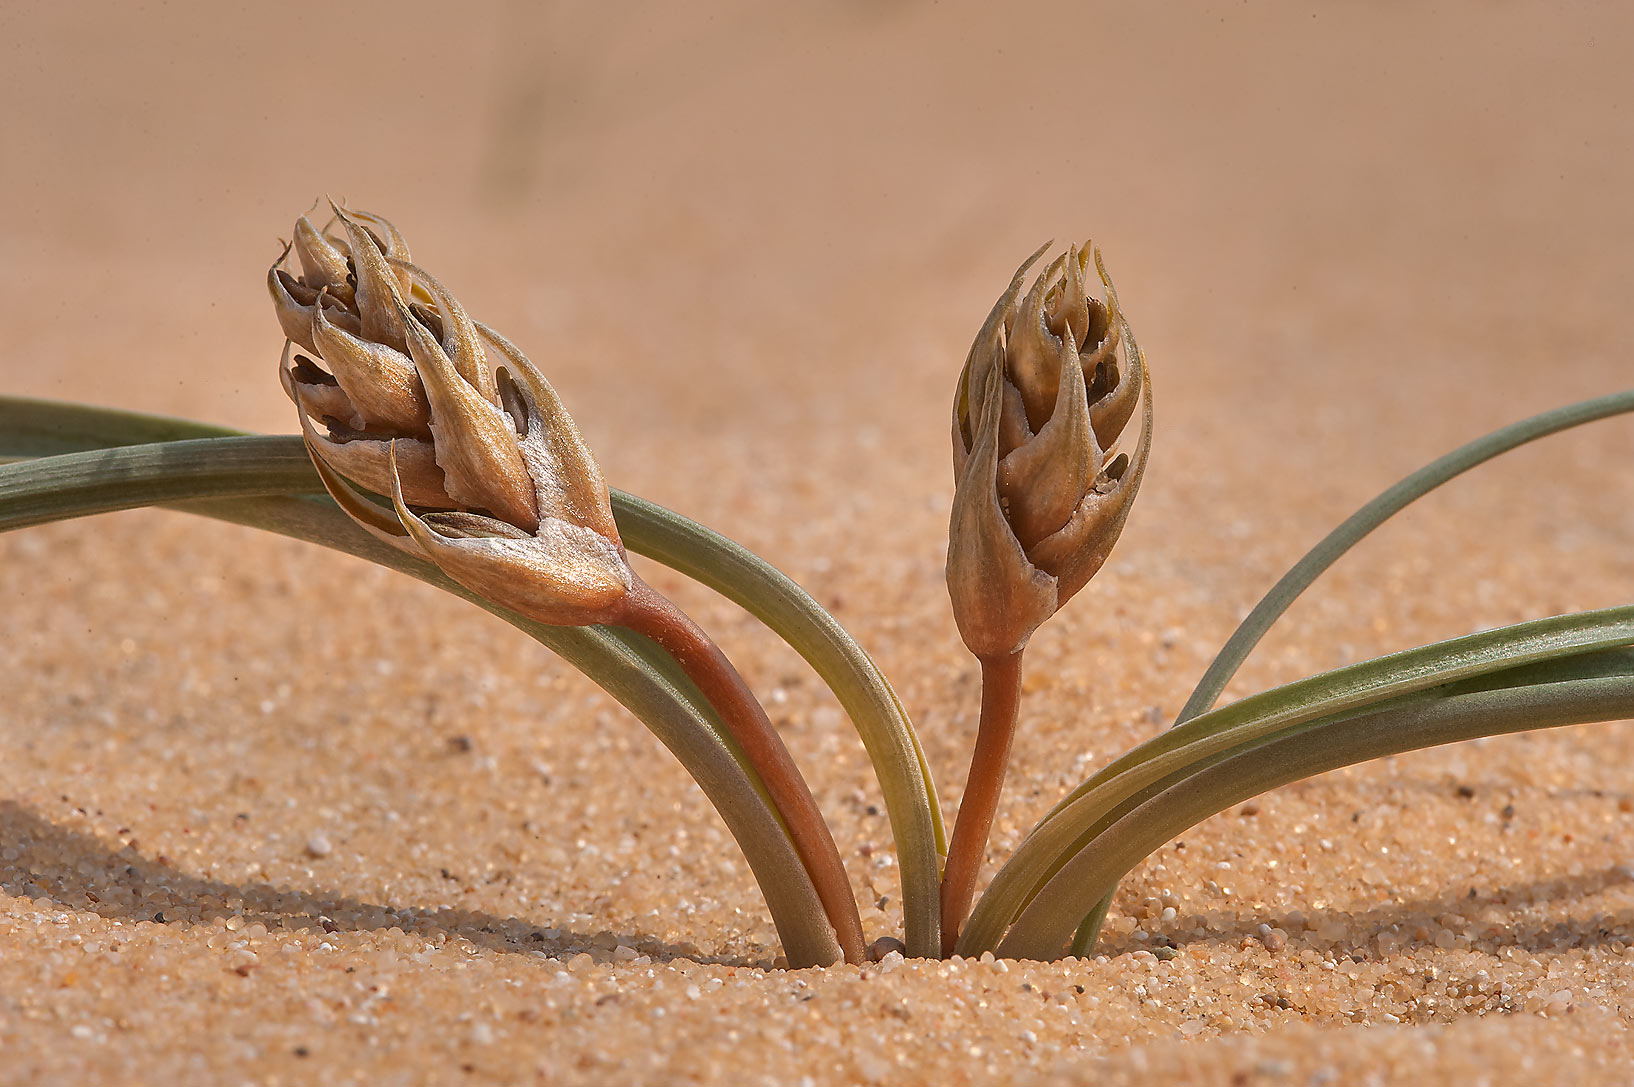 Flower buds of Brown lily (Dipcadi erythraeum...Jebel Al-Nakhsh in south-western Qatar